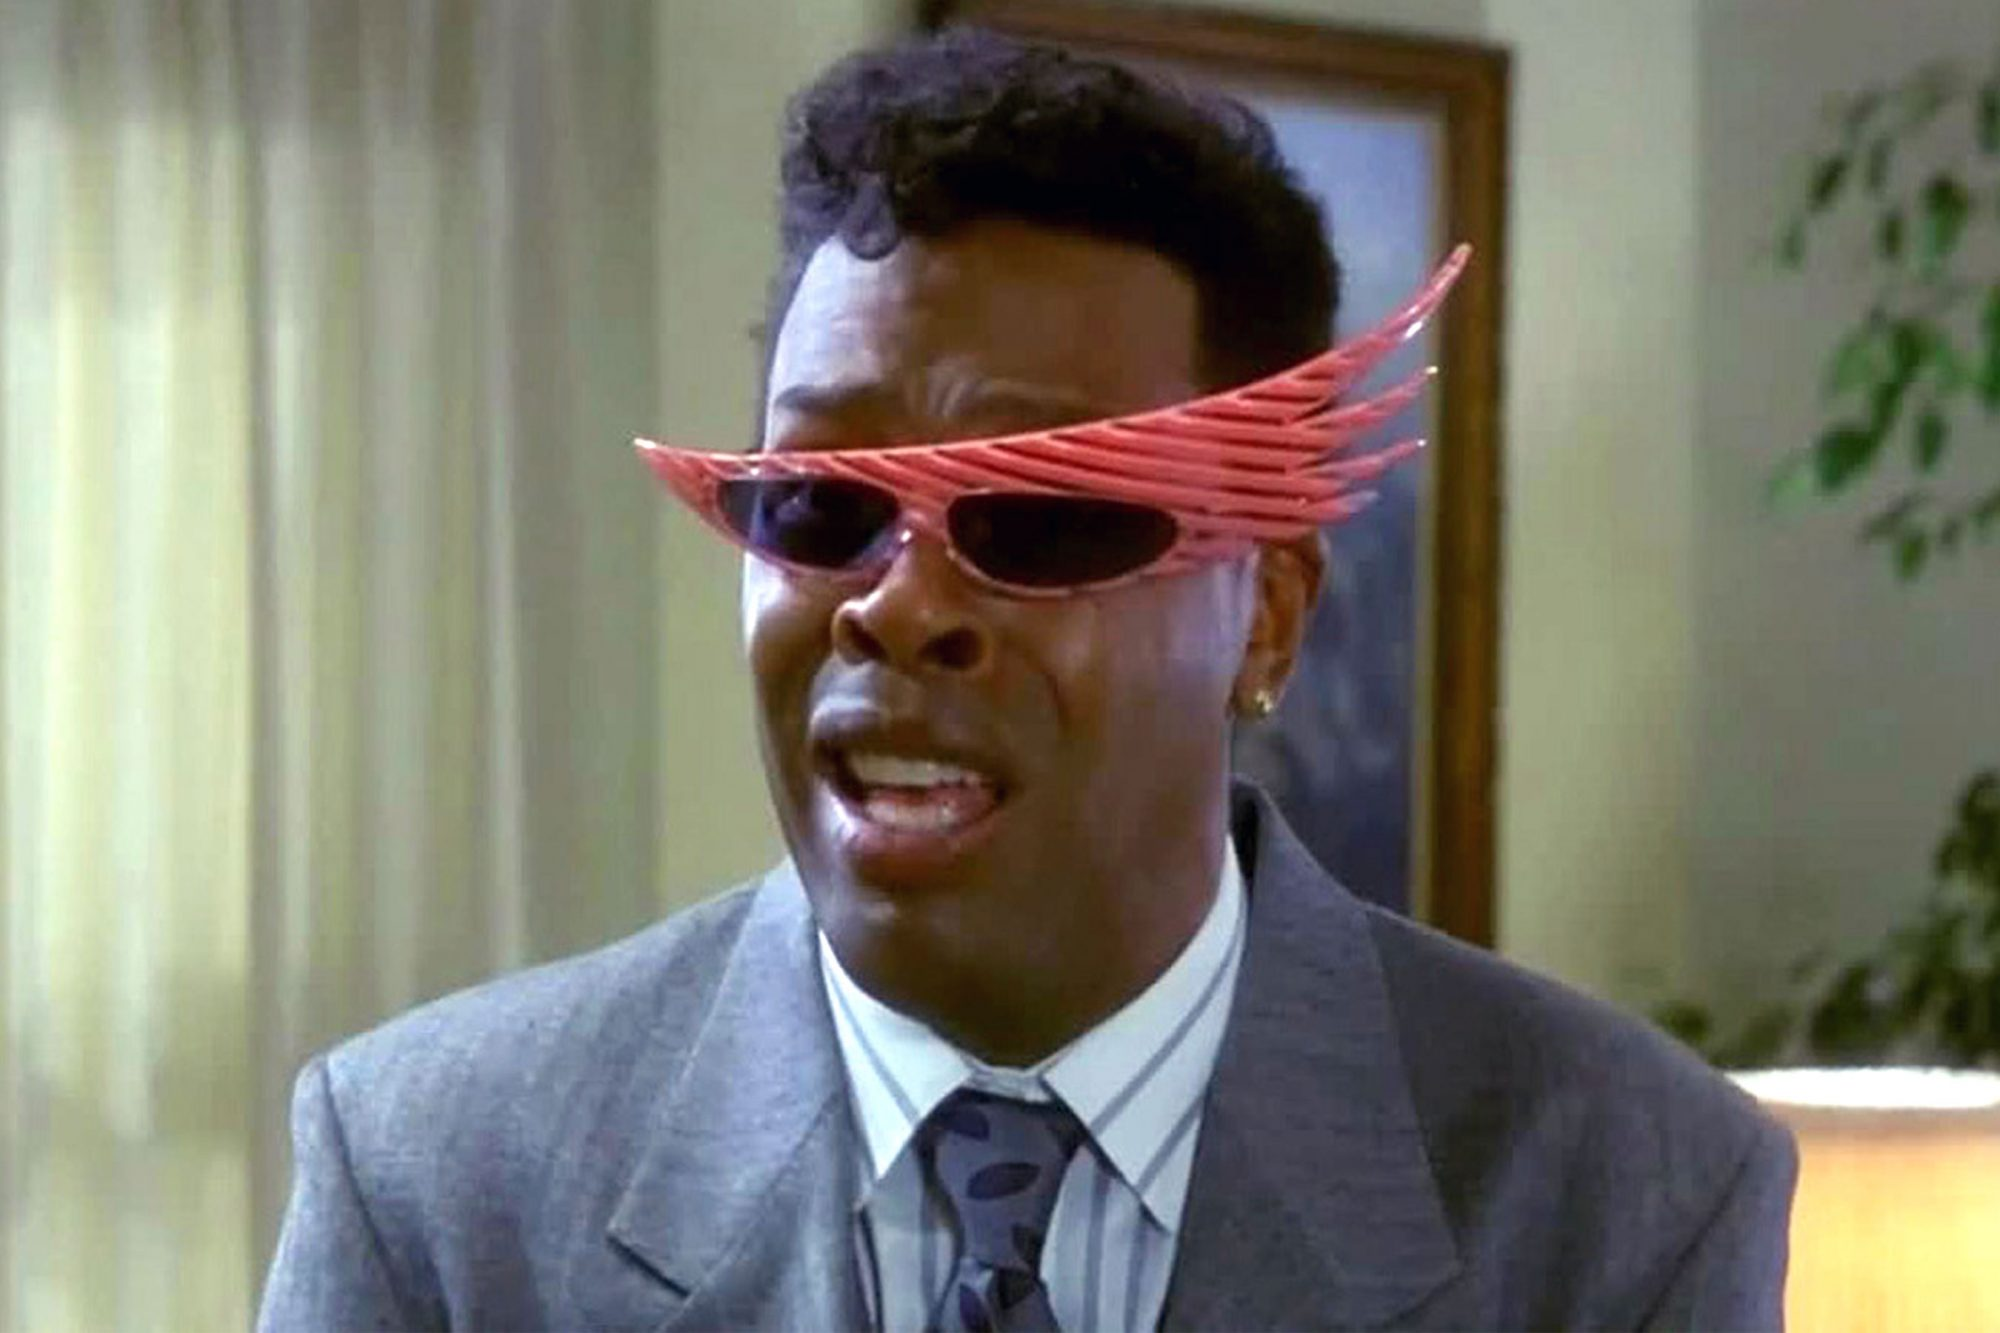 Mannequin (1987) (screen grab)Meshach Taylor CR: MGM